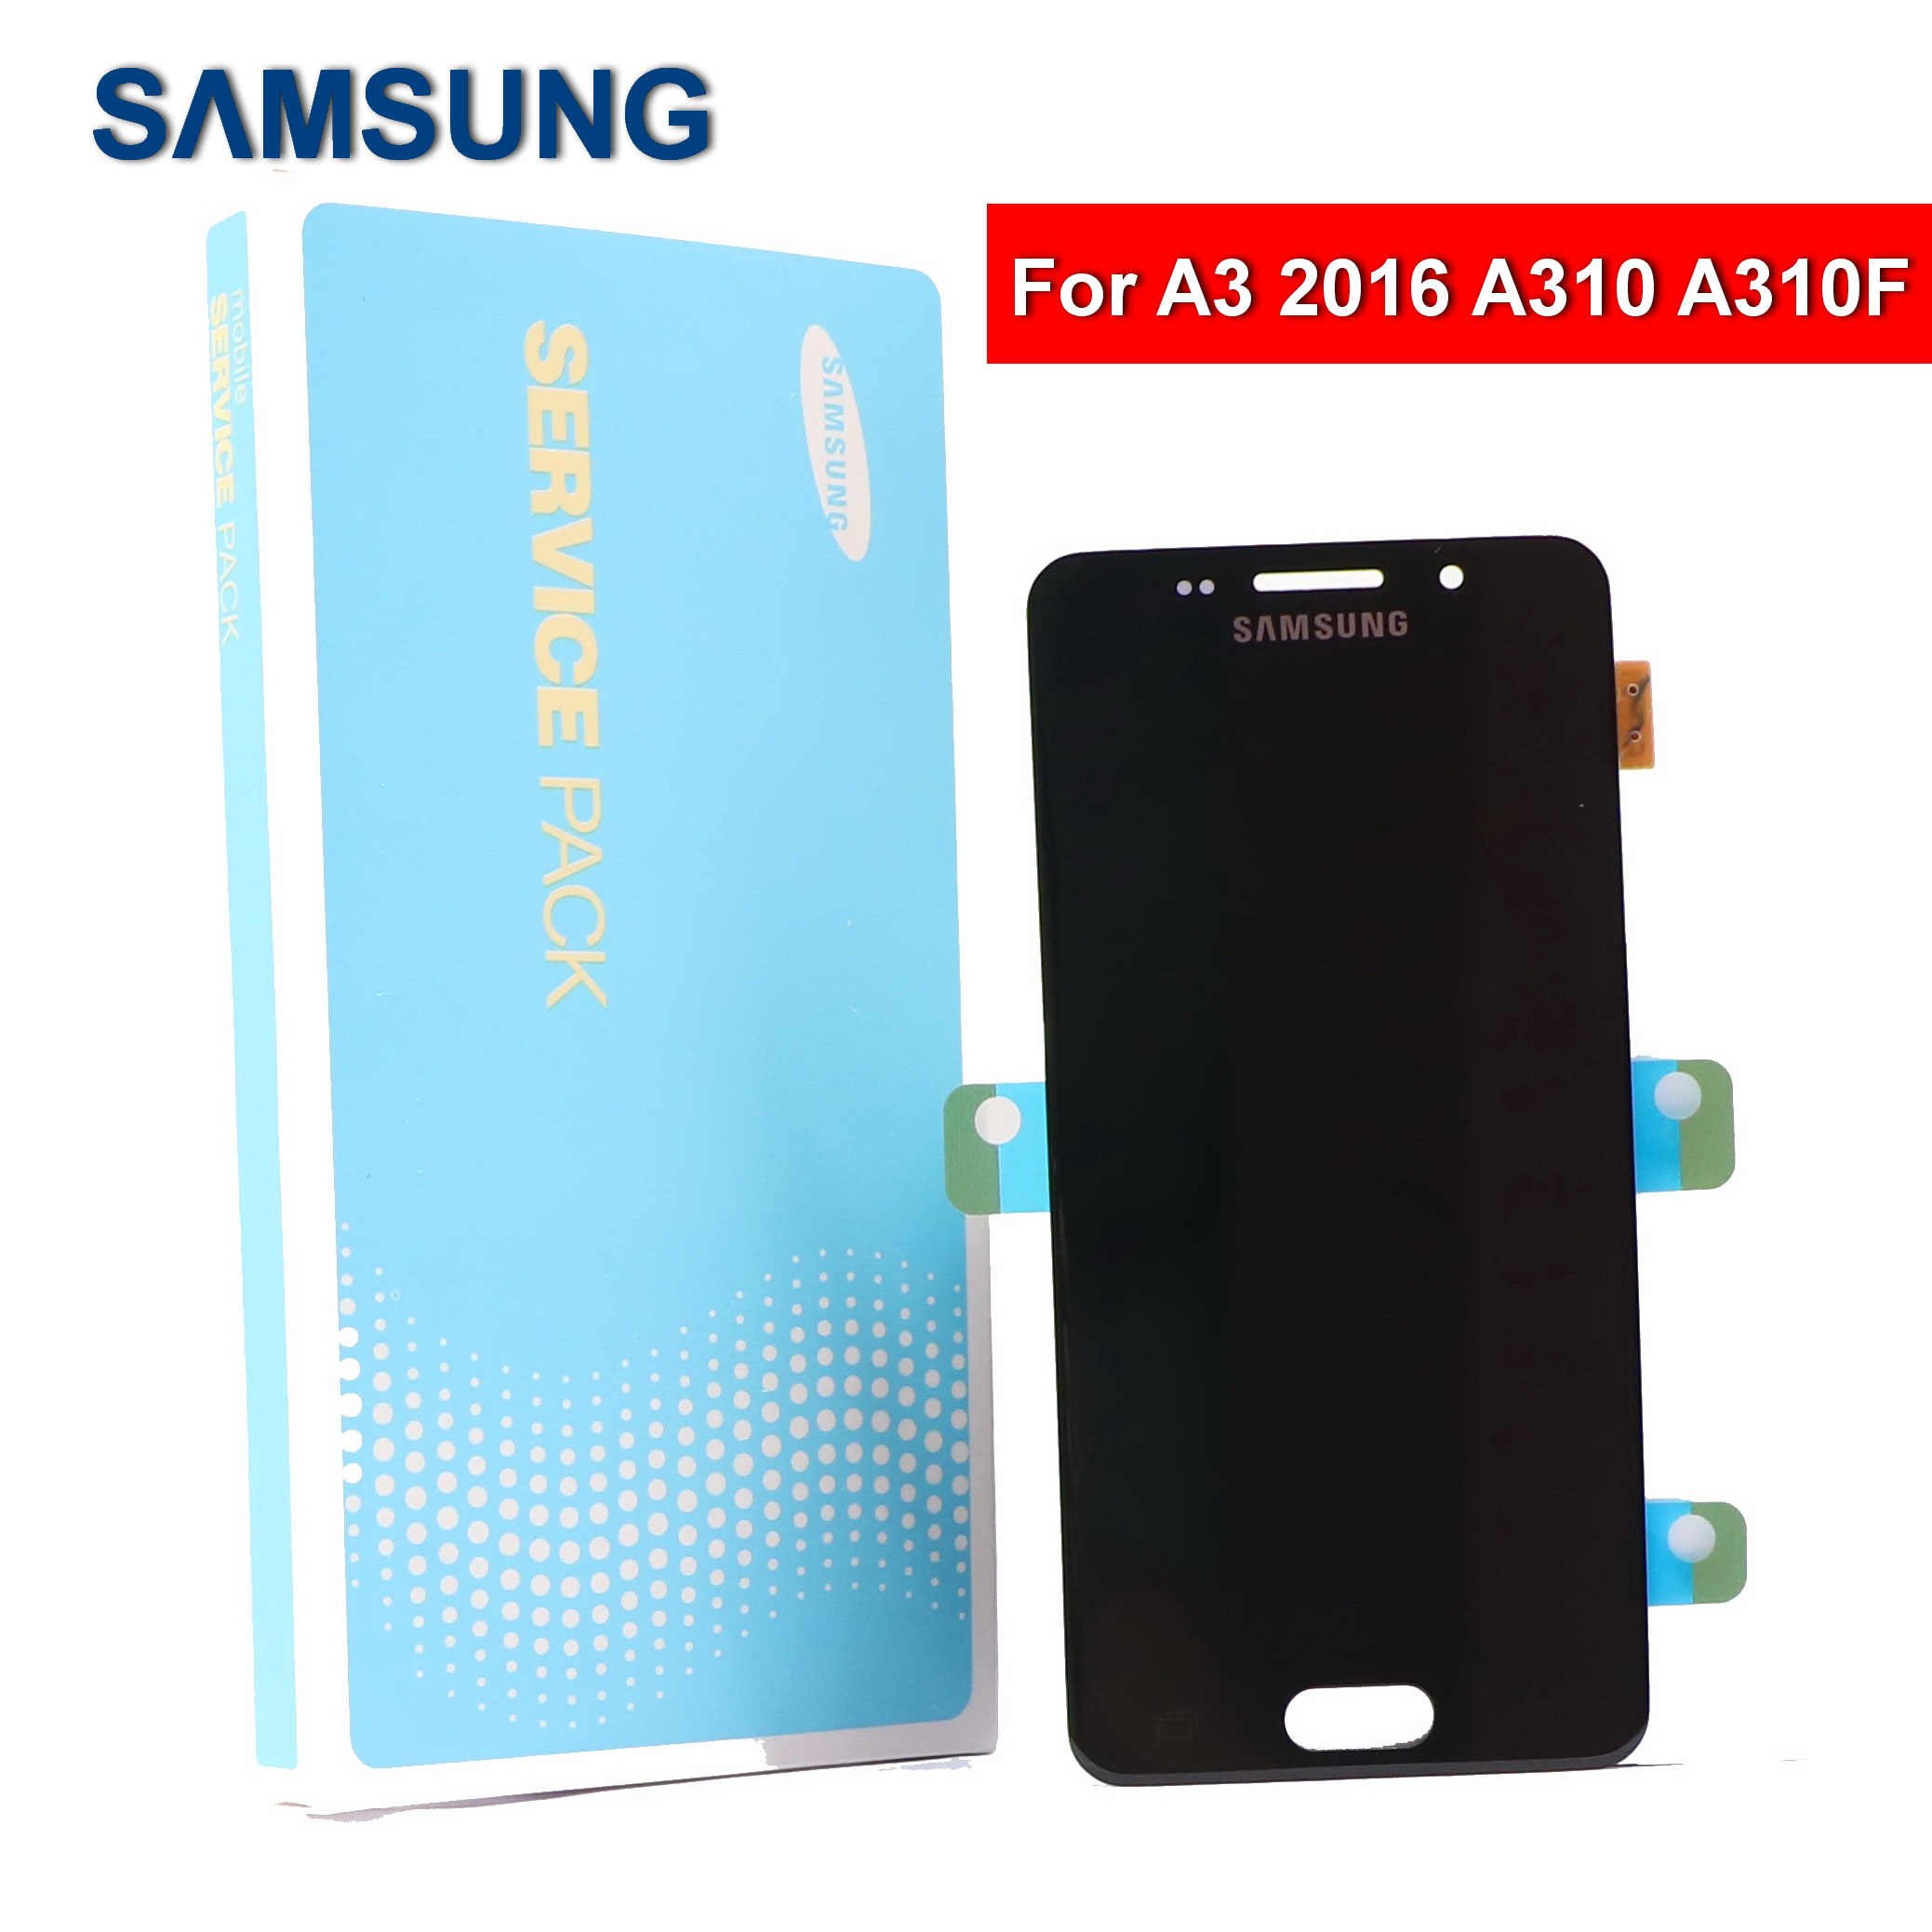 100% Original 4.7'' SUPER <font><b>AMOLED</b></font> For SAMSUNG Galaxy A3 2016 A310 <font><b>A310F</b></font> A3100 Phone LCD <font><b>Display</b></font> Touch Screen Digitizer Assembly image